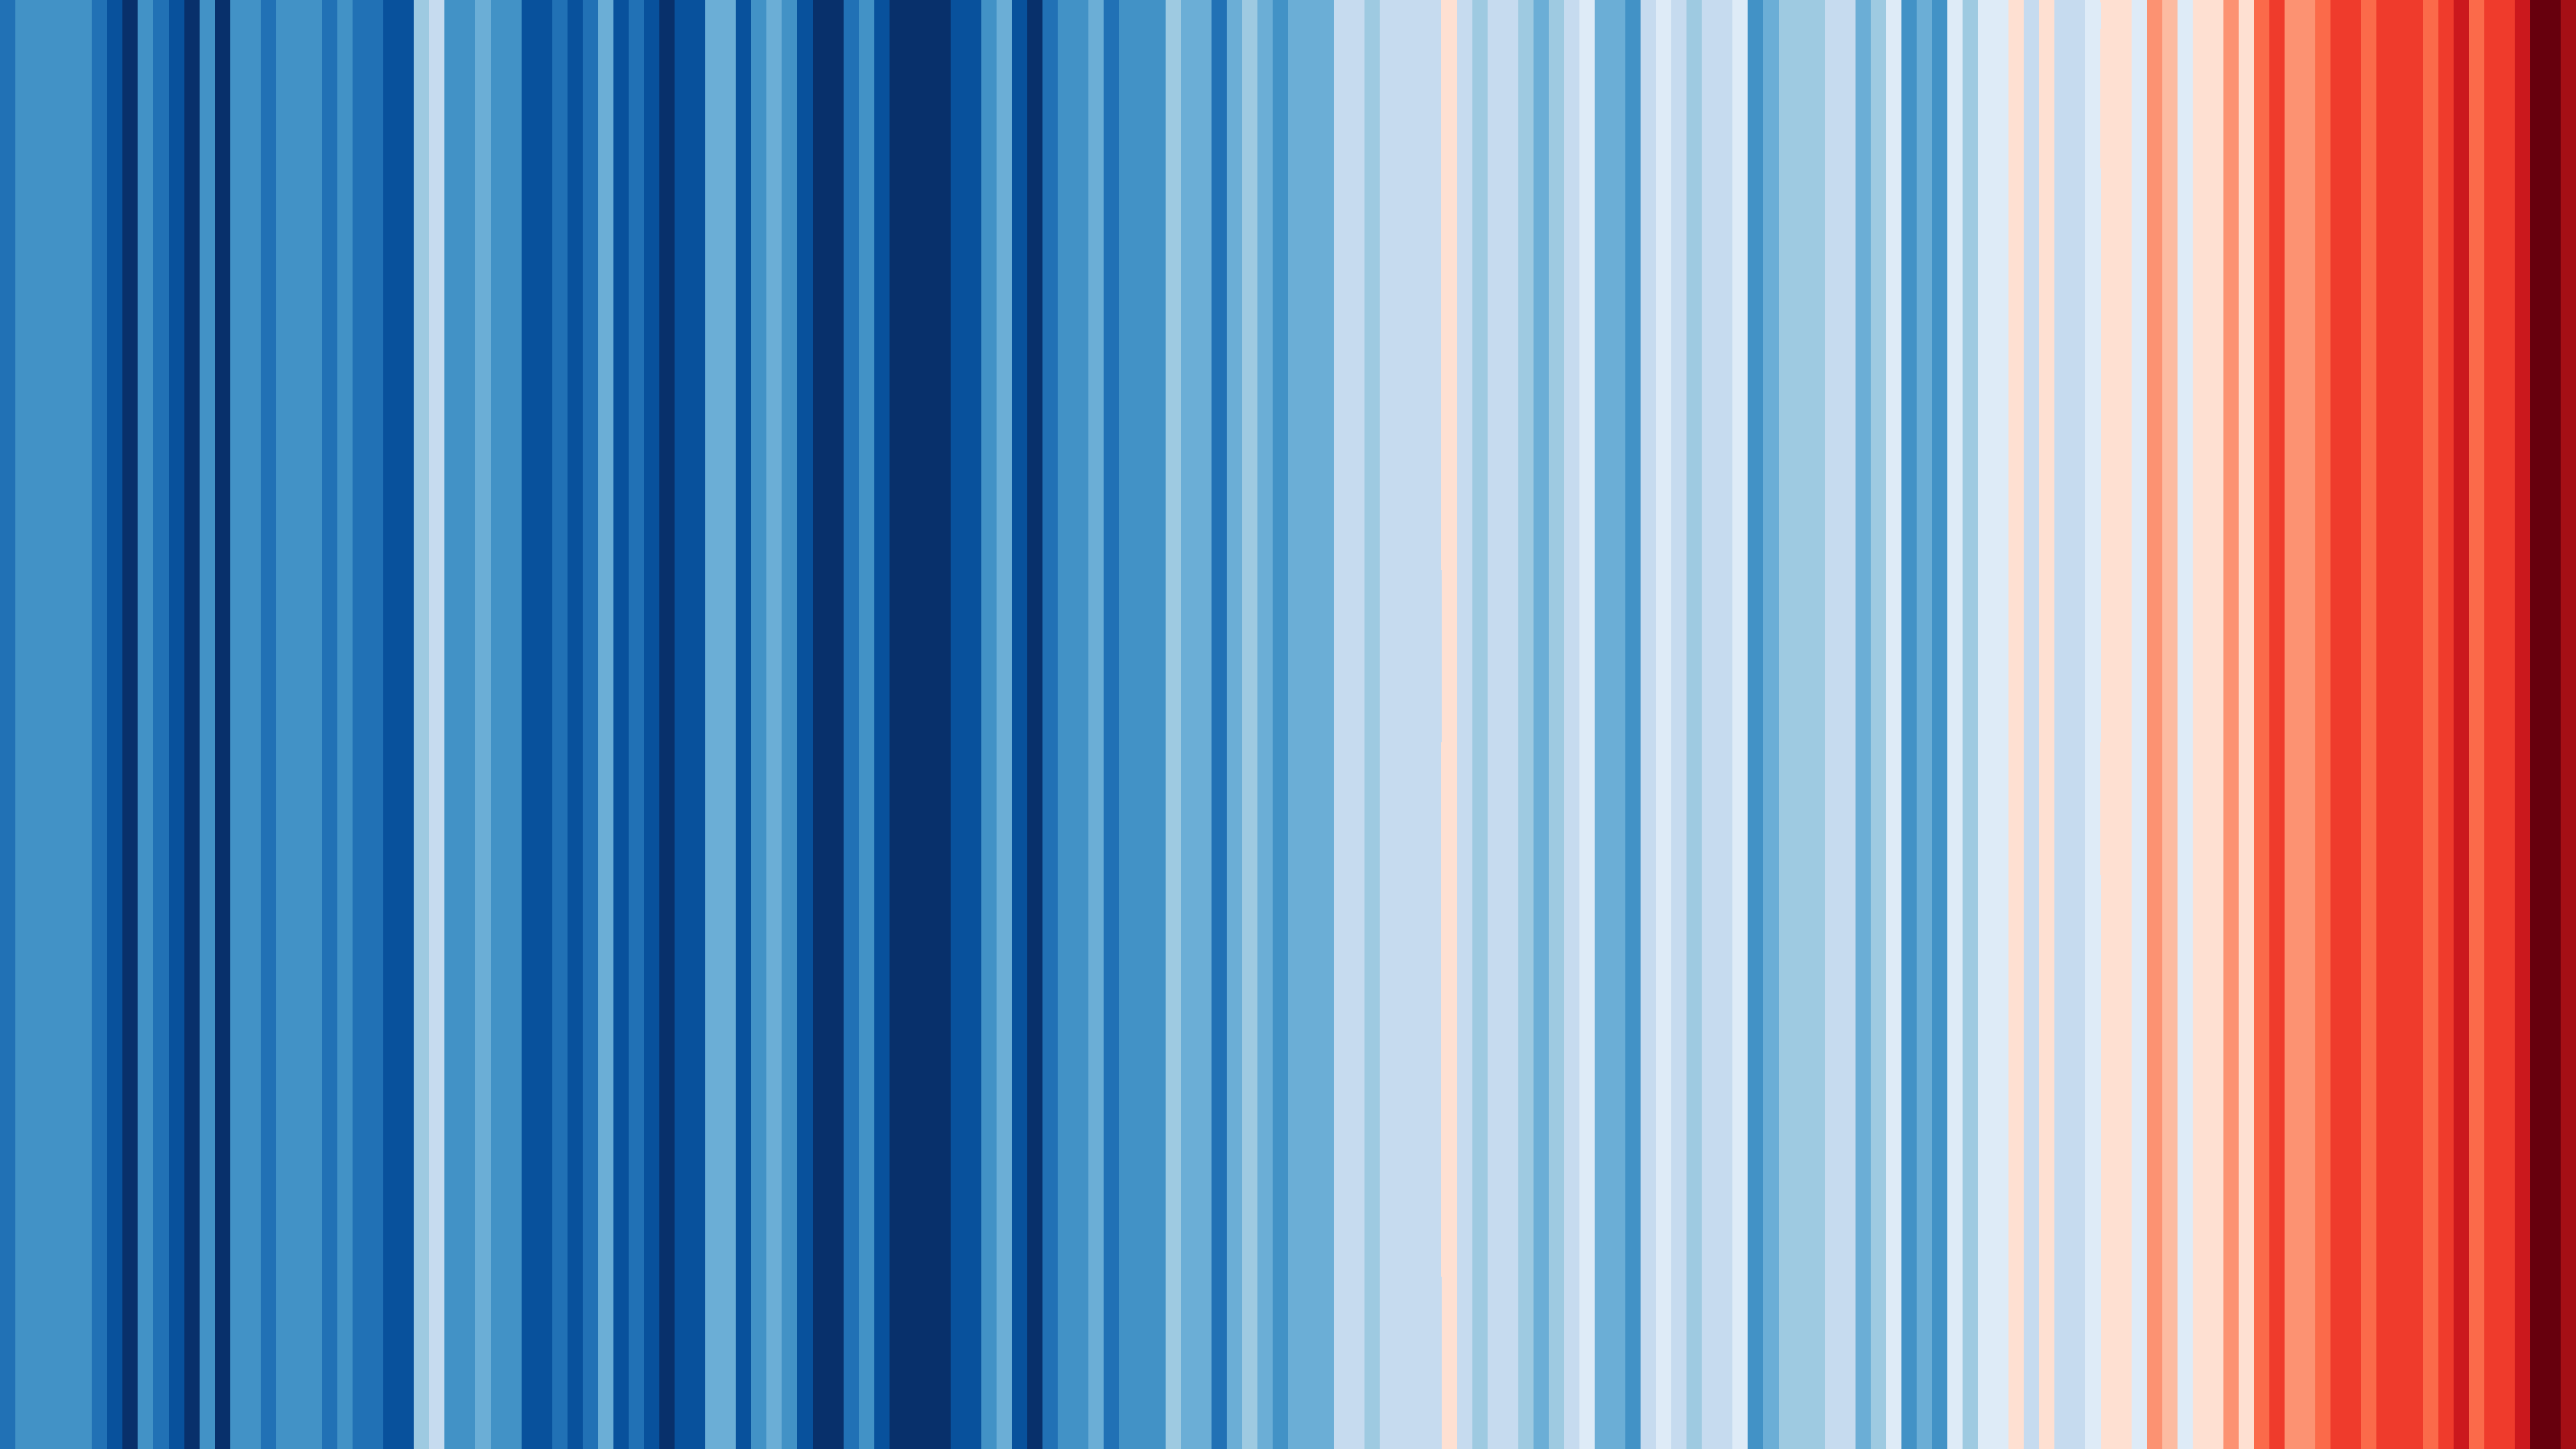 Annual Global Temperatures From 1850 To 2017